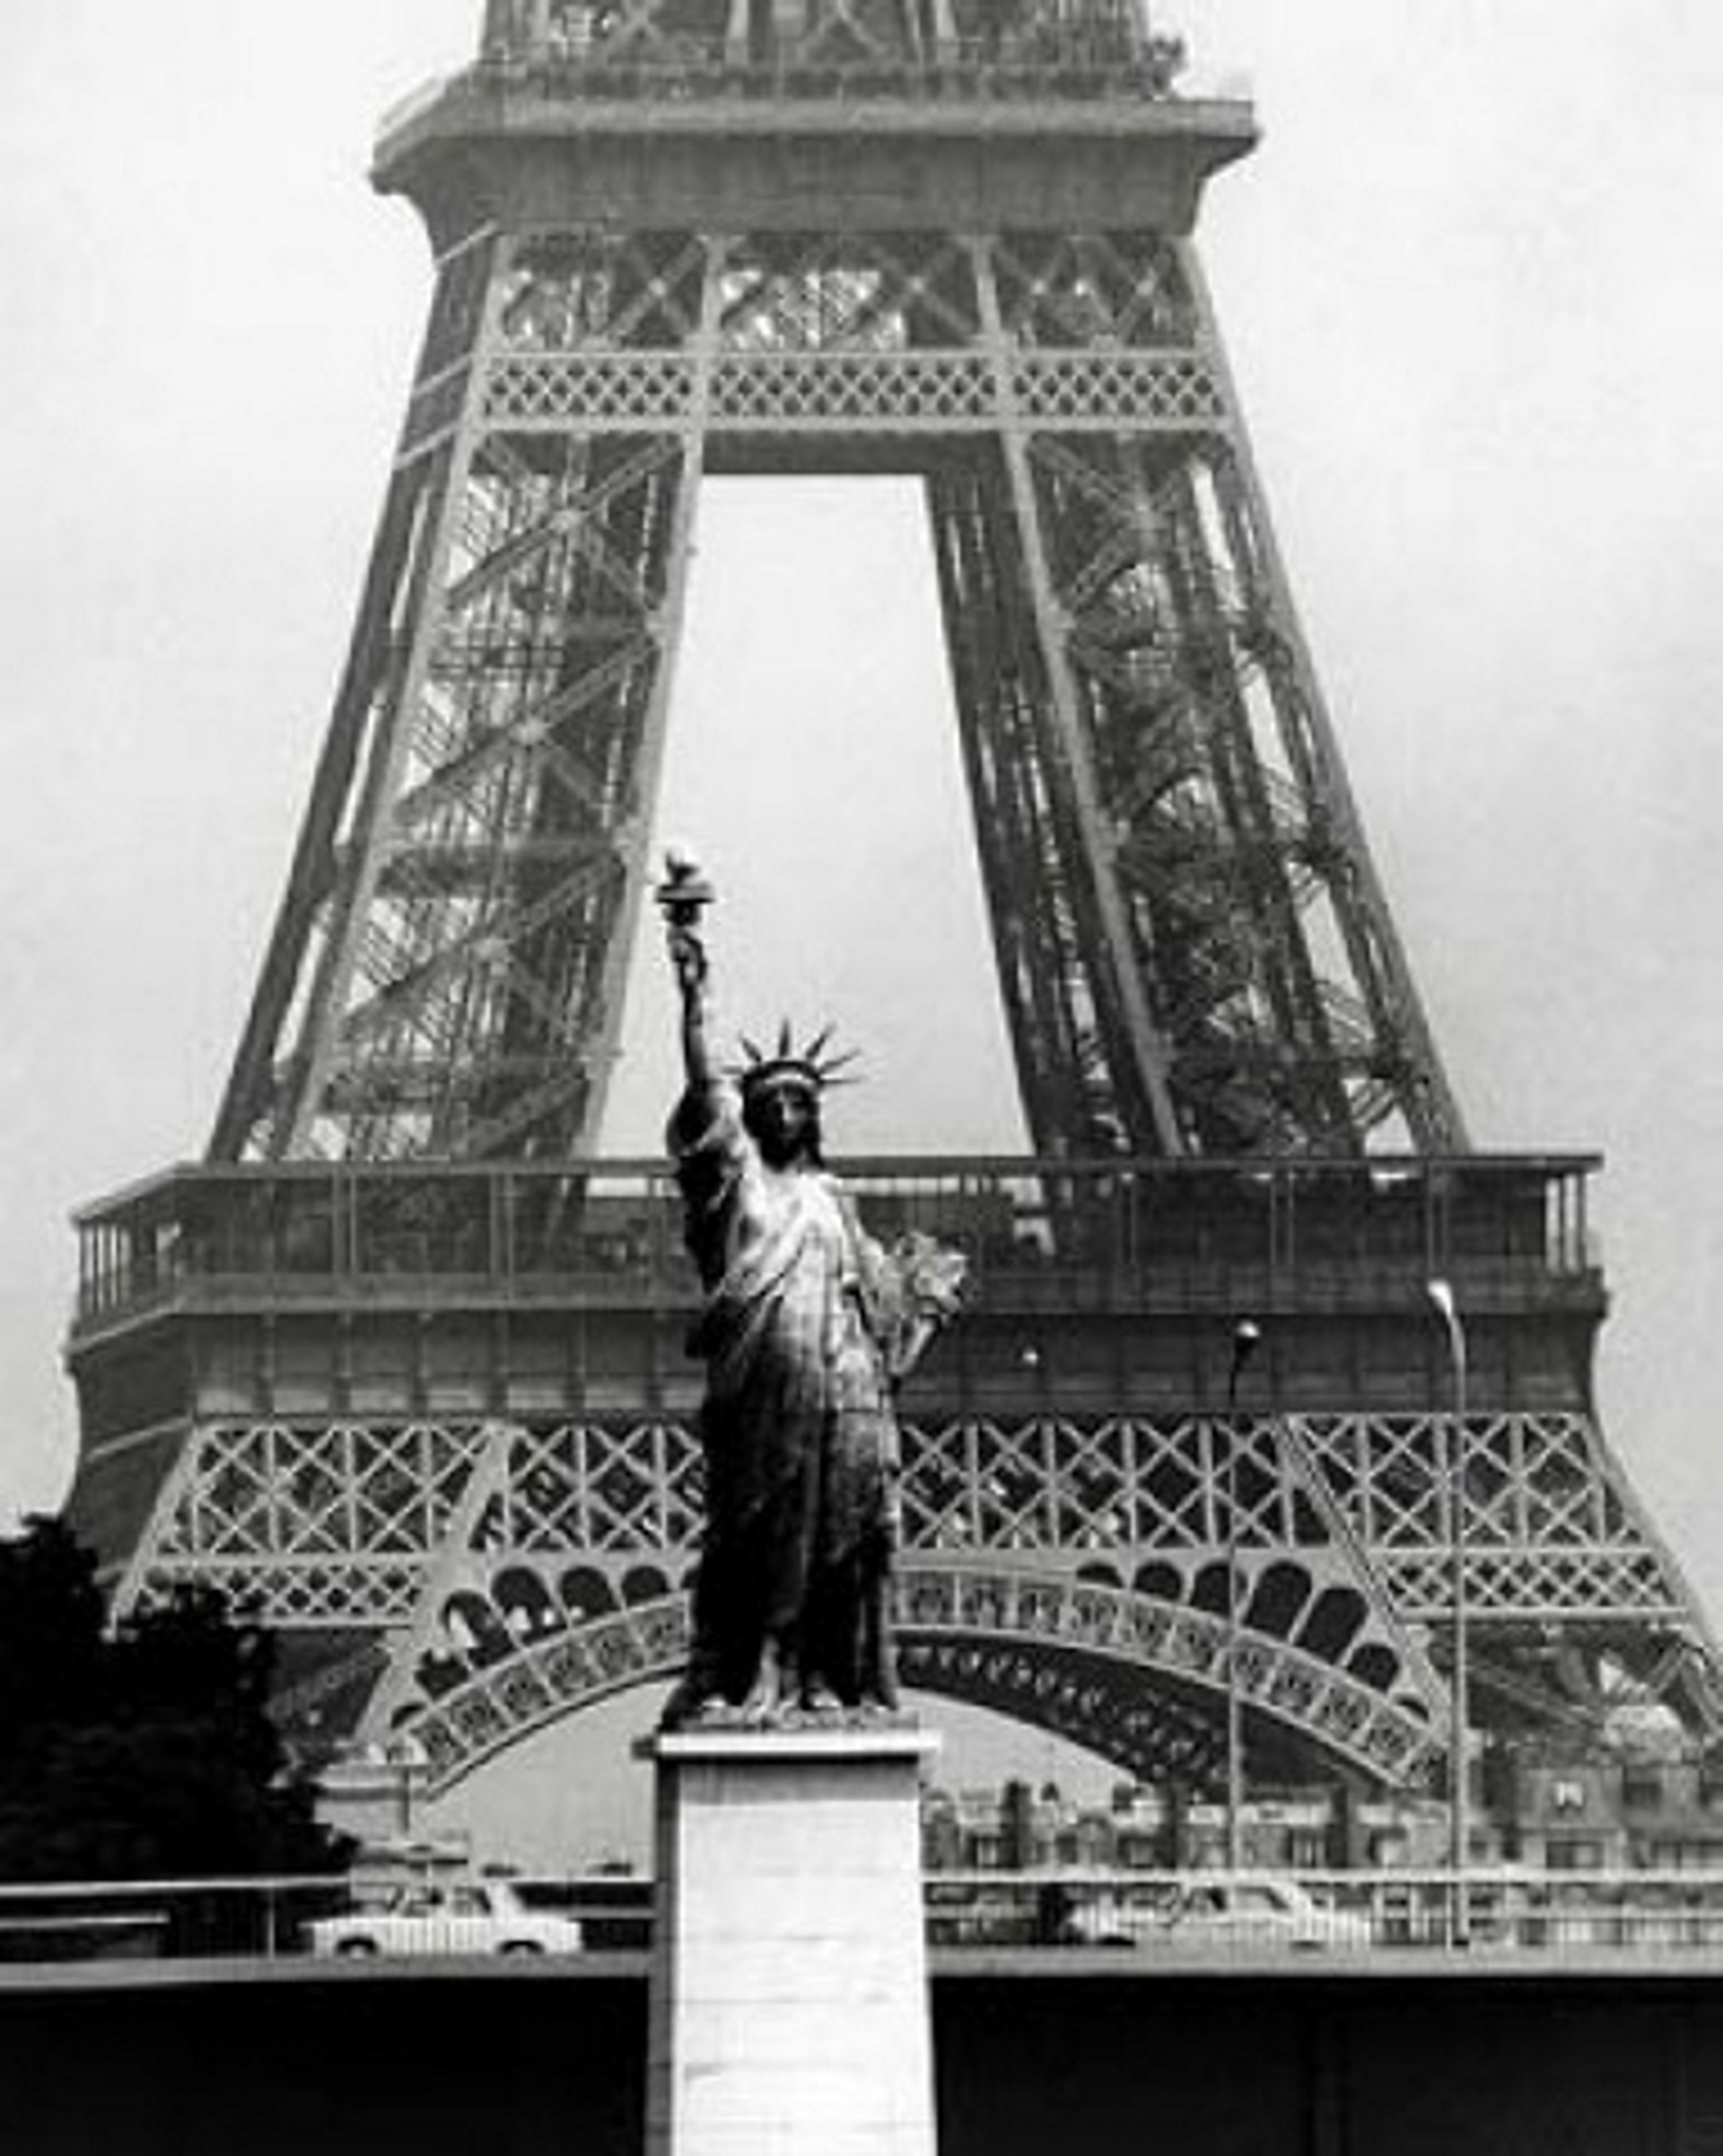 Robert Doisneau Statue of Liberty